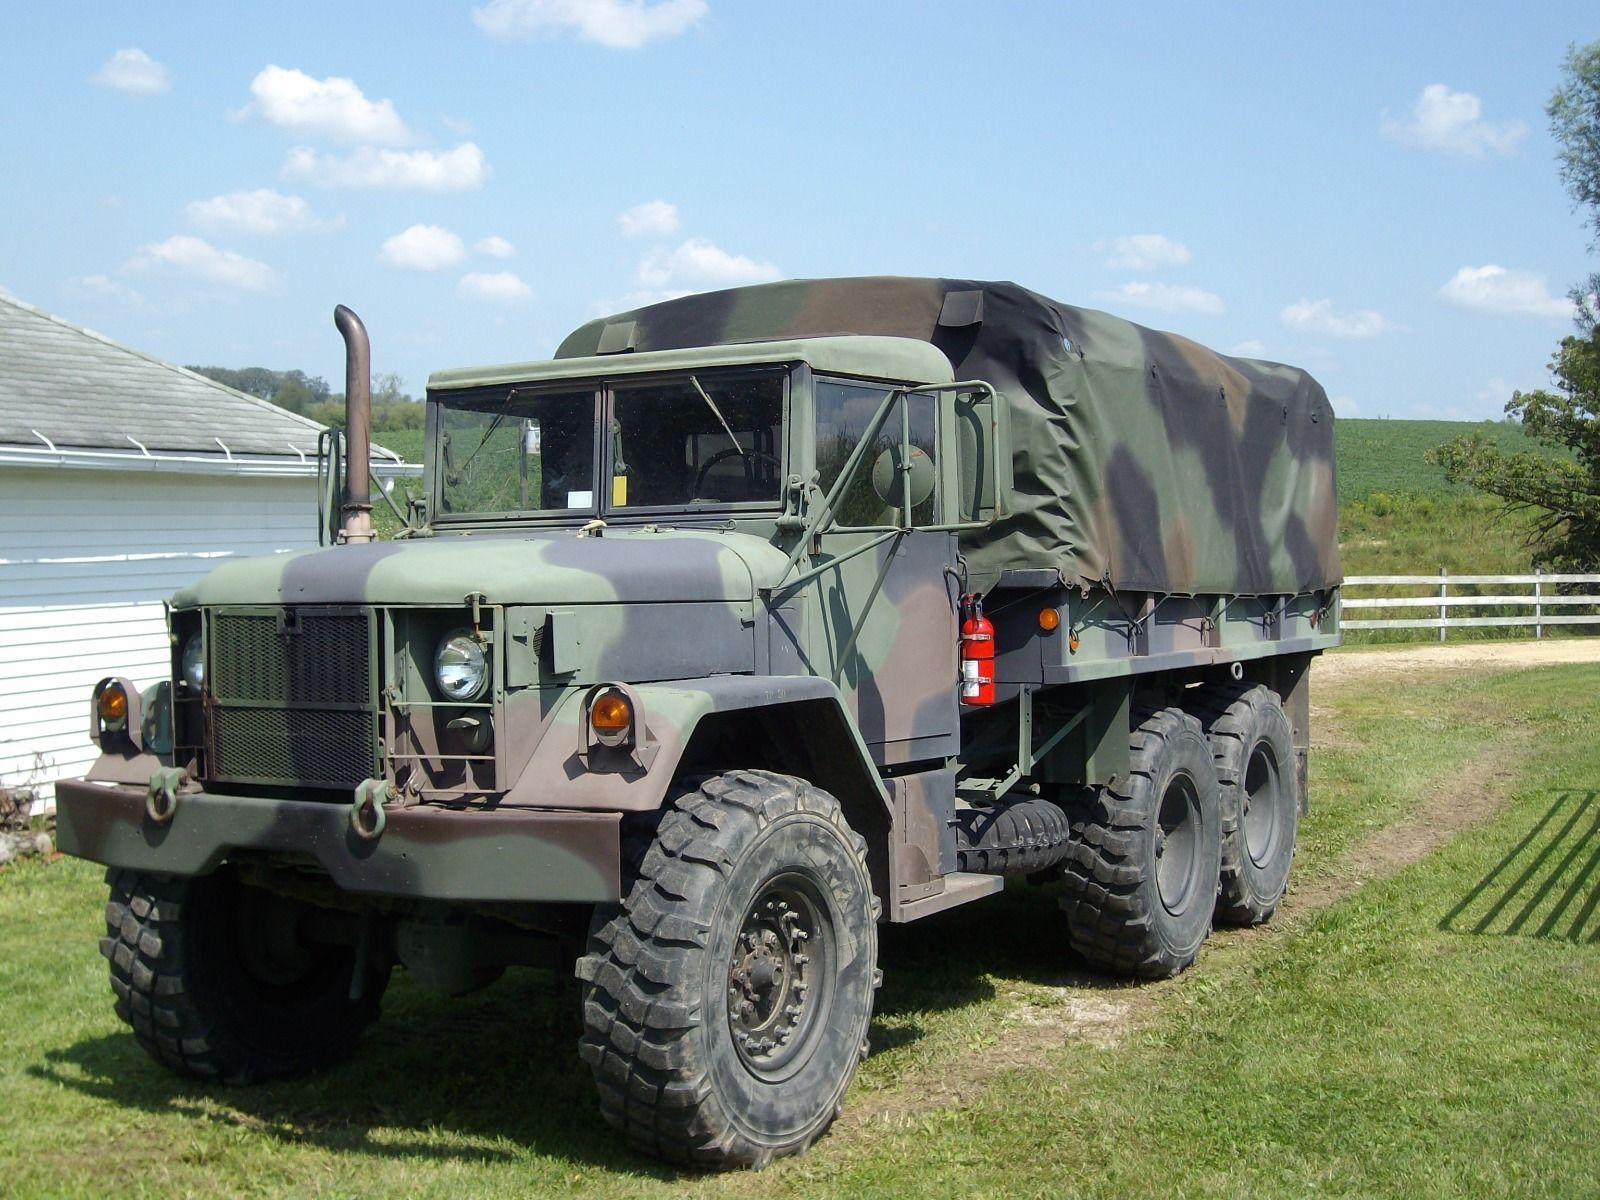 turbo equipped 1967 kaiser jeep m35a2 vehicule militaire pinterest camion militaire. Black Bedroom Furniture Sets. Home Design Ideas